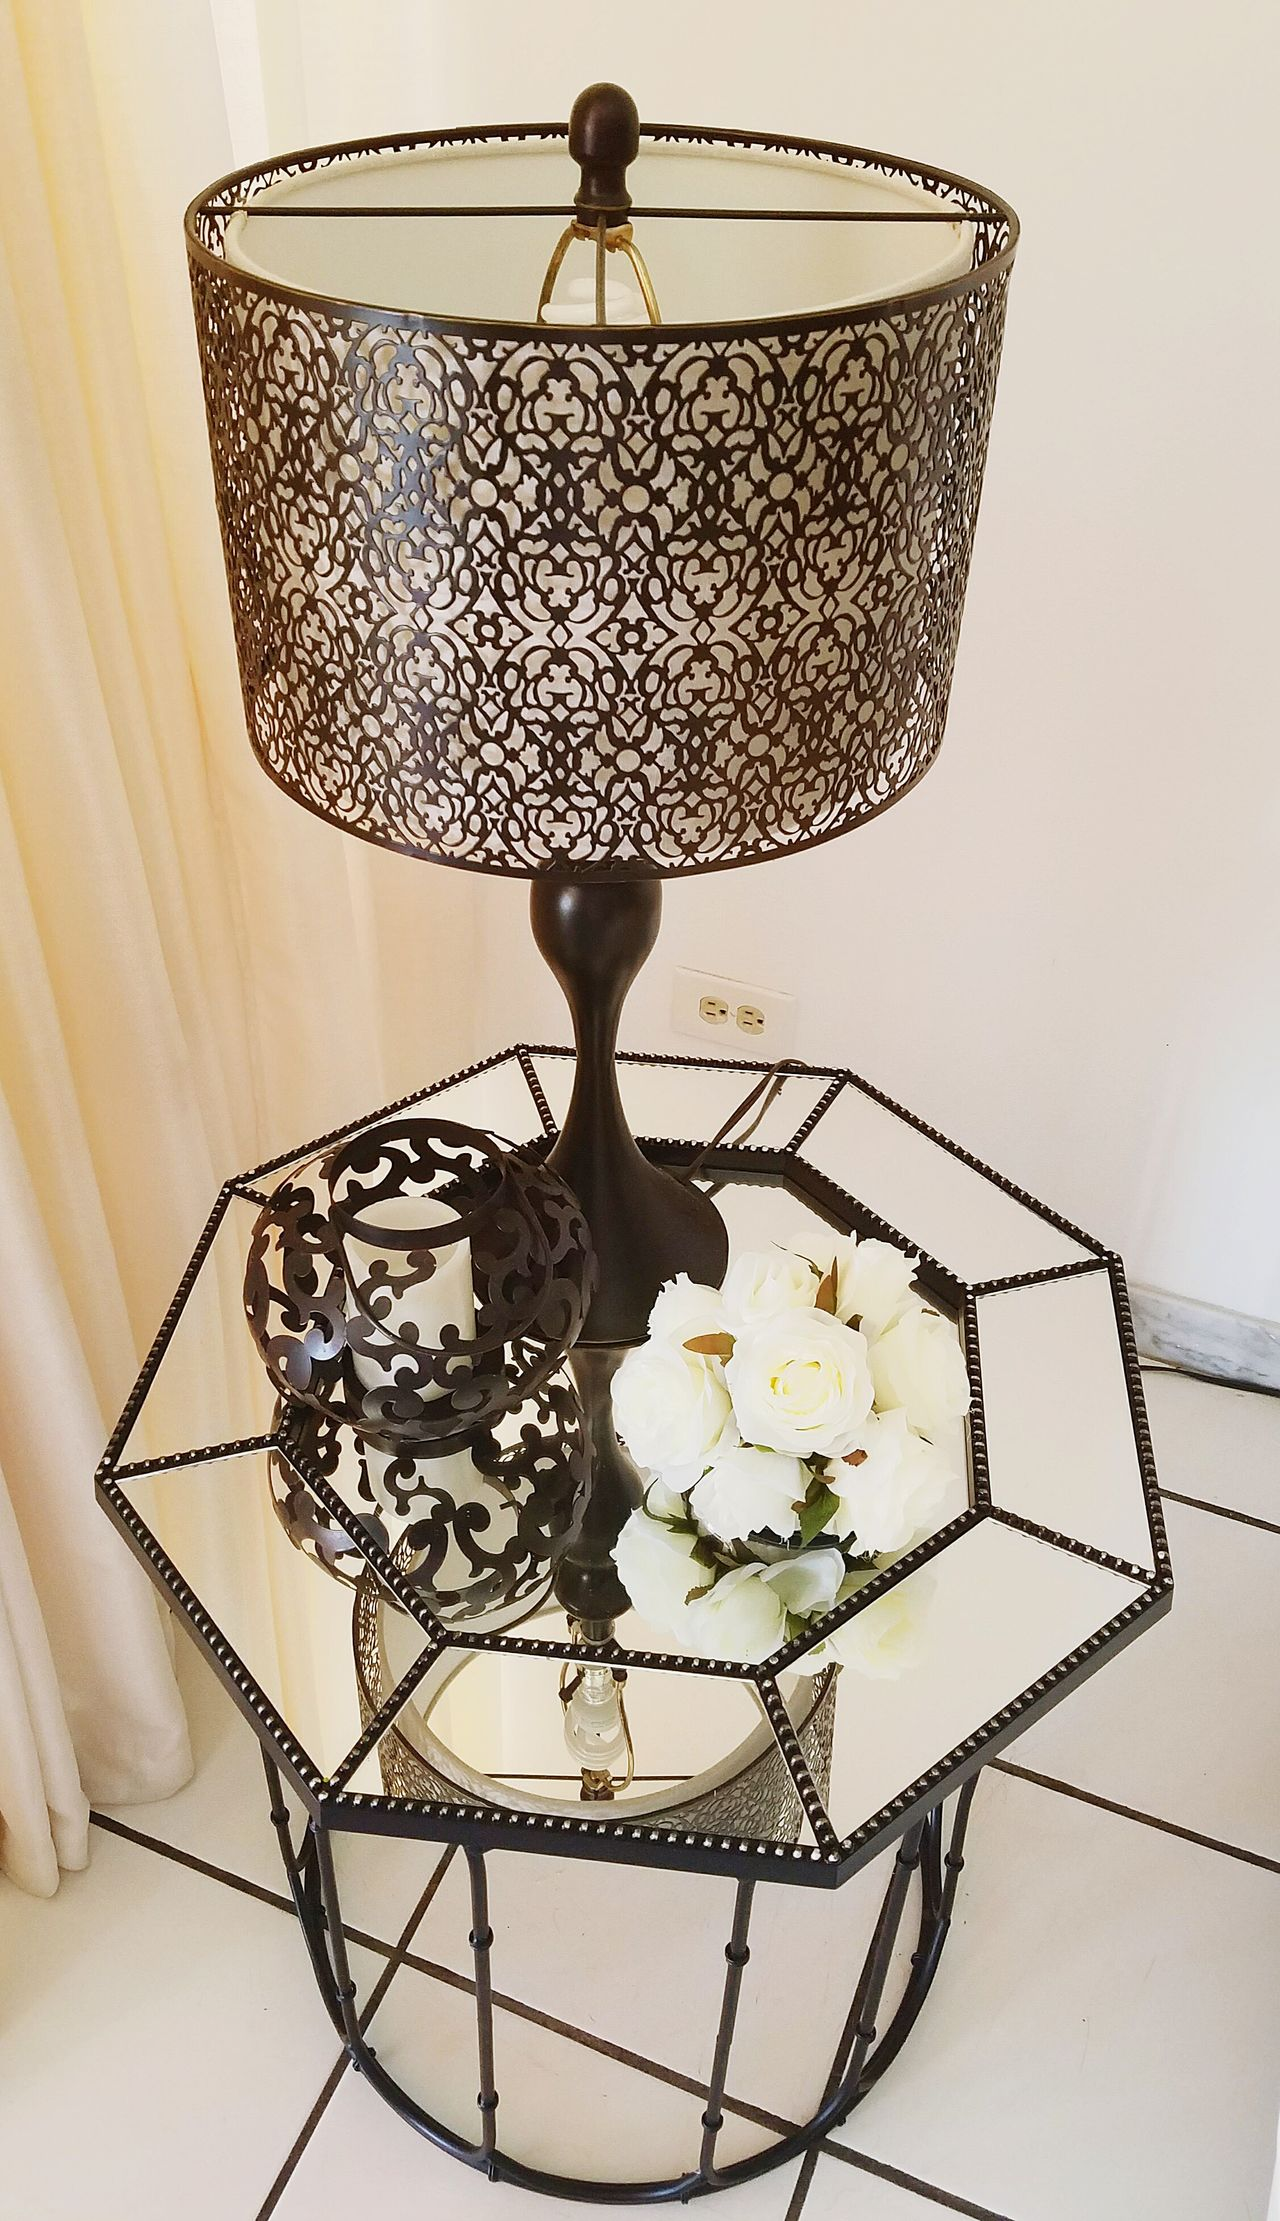 Table Mirrored Reflection Reflections Still Life Fine Art Photography Pattern, Texture, Shape And Form Decoration Details Beautiful Lamp Modern Style Perspective Lieblingsteil Minimalism Decoration Element Open Edit Light And Shadow Mirror Table Flowers White Flowers Black & White